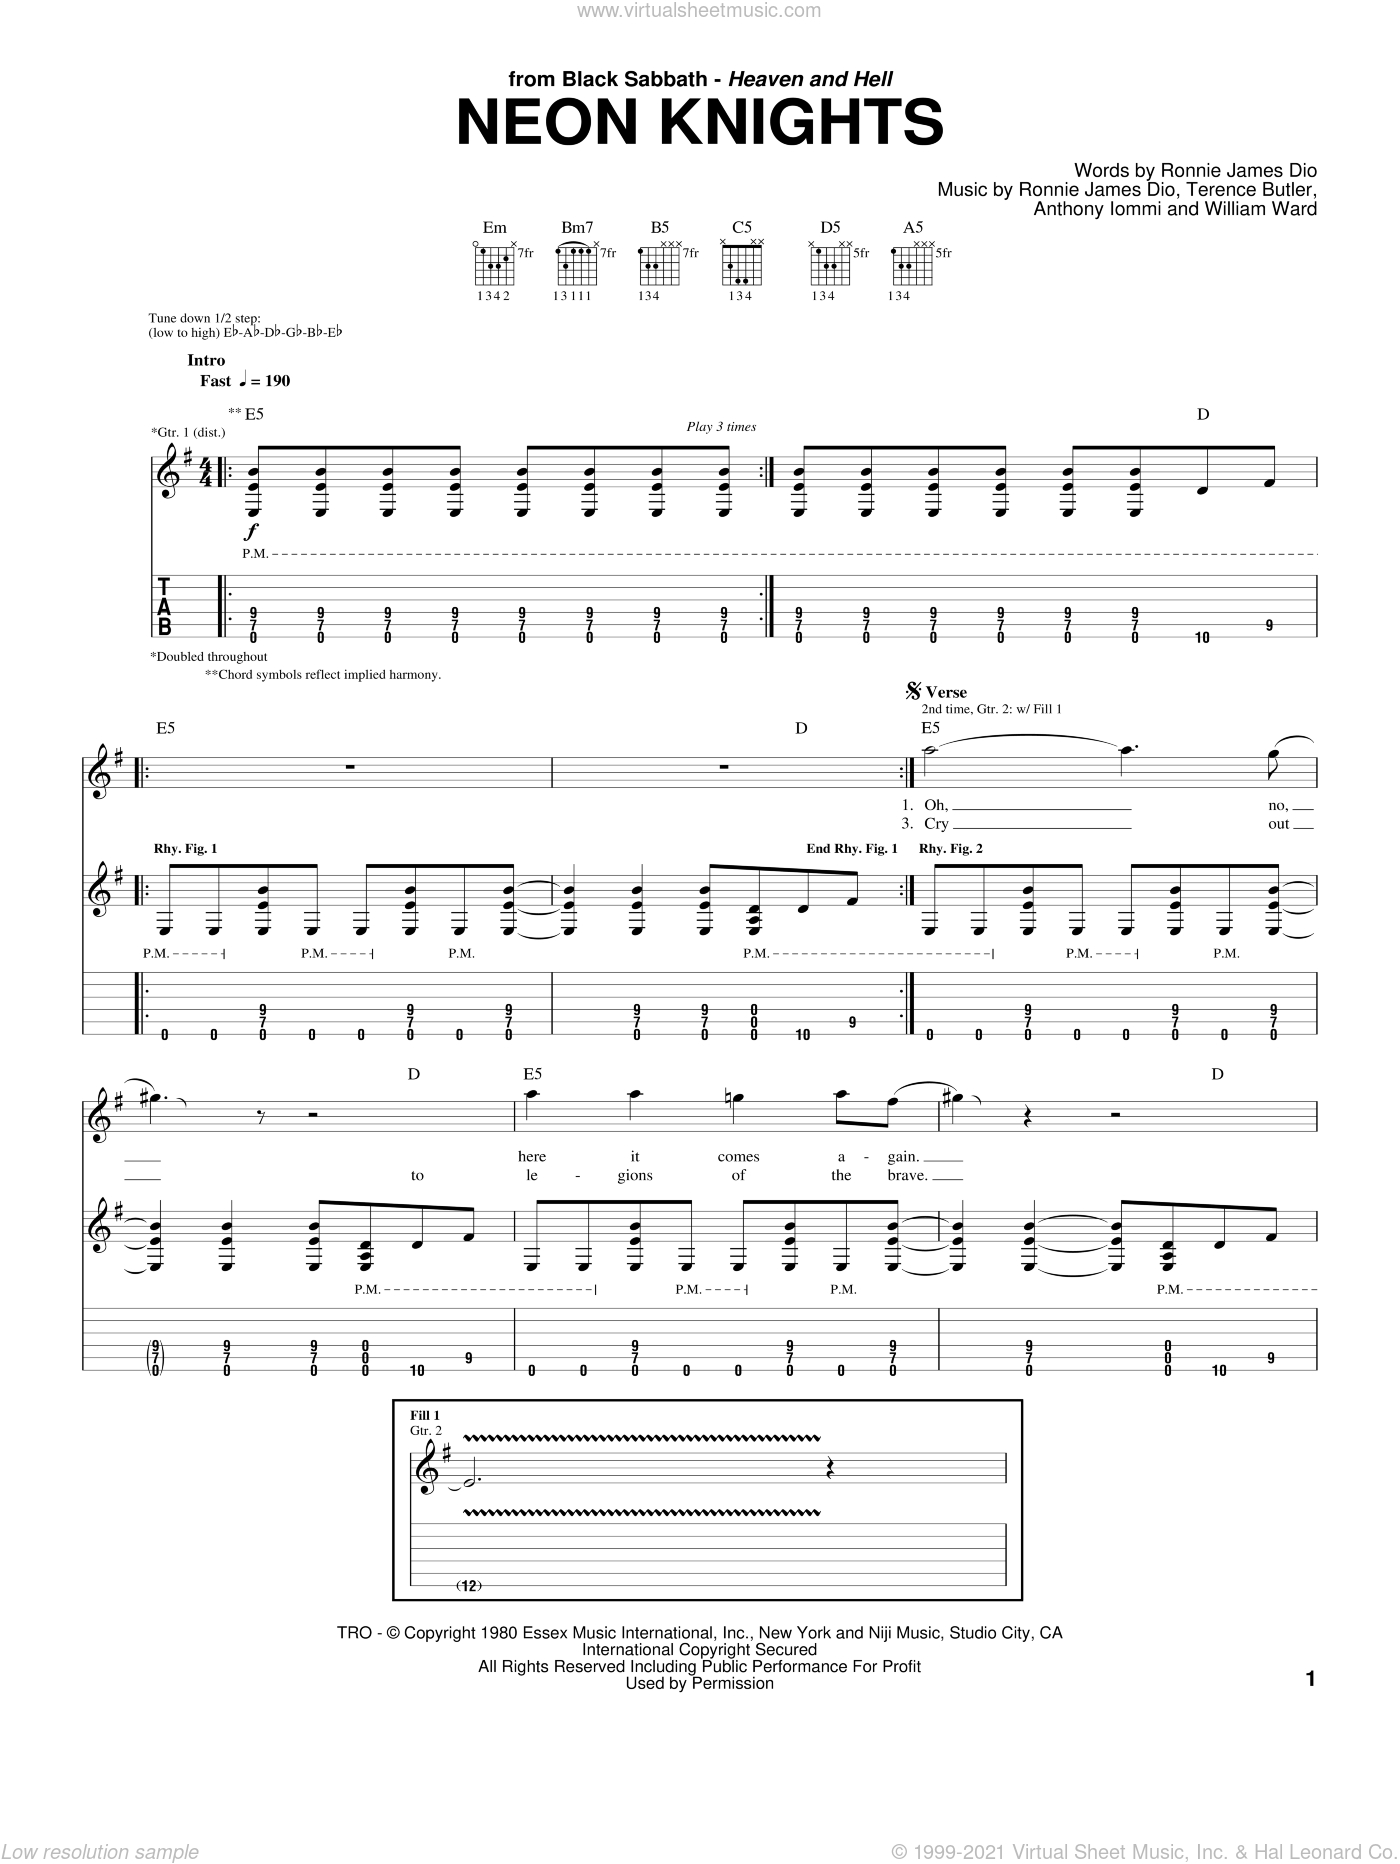 Neon Knights sheet music for guitar (tablature) by William Ward